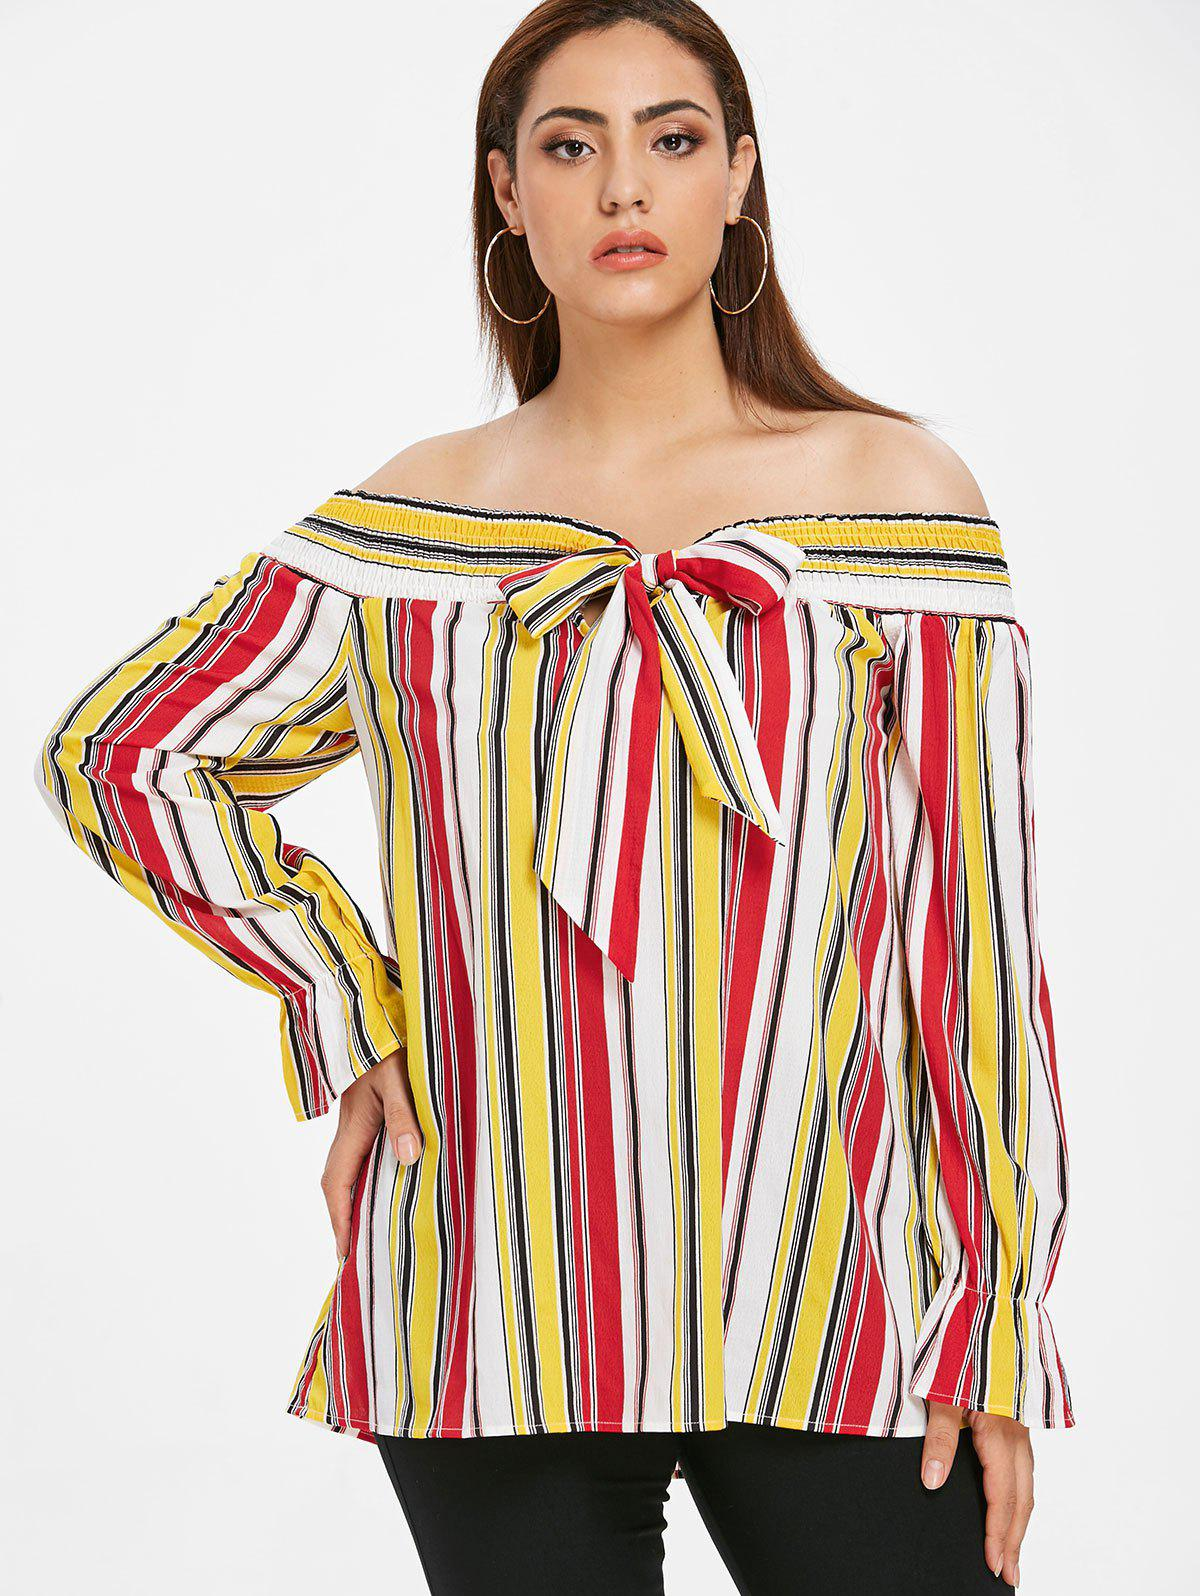 ZAFUL Plus Size Knotted Striped Blouse